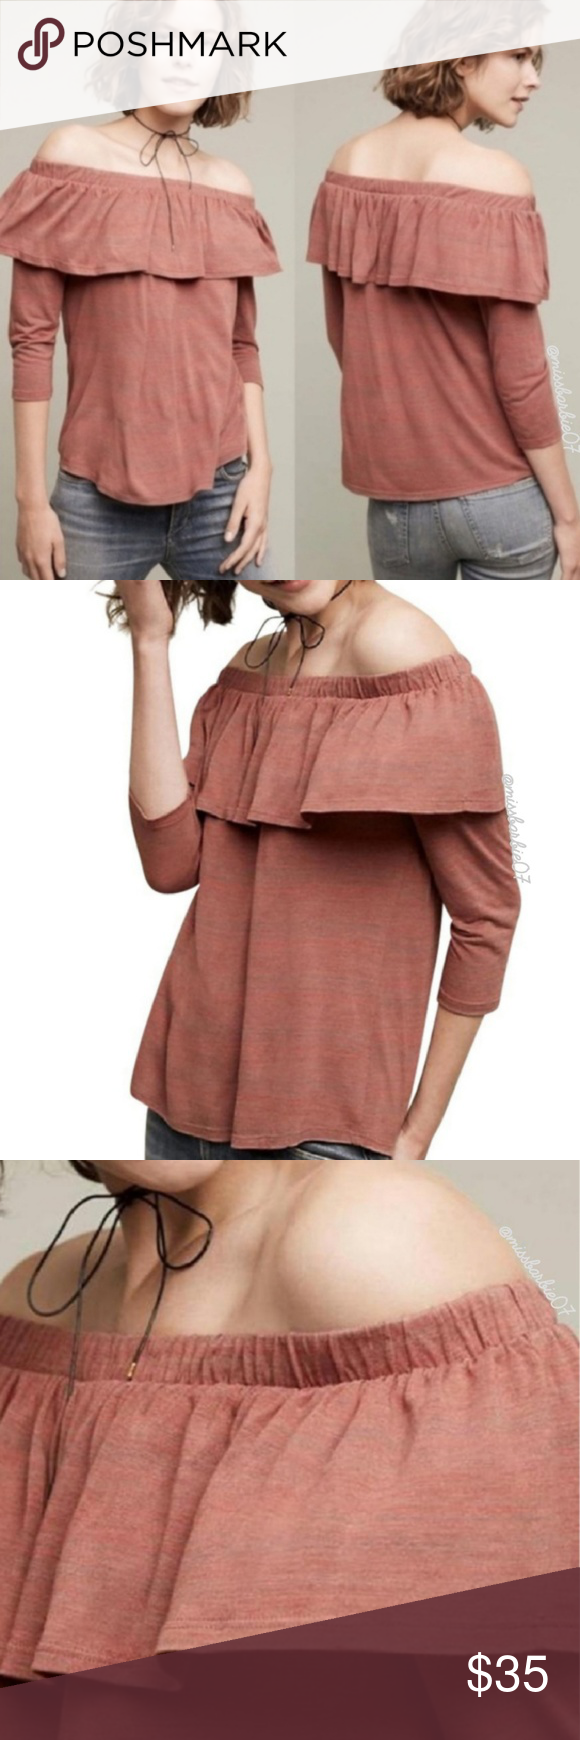 e3168dc0dc97a Anthropologie Dolan Left Coast Charla Off Shoulder New with tags  Anthropologie Dolan Left Coast Collection Charla